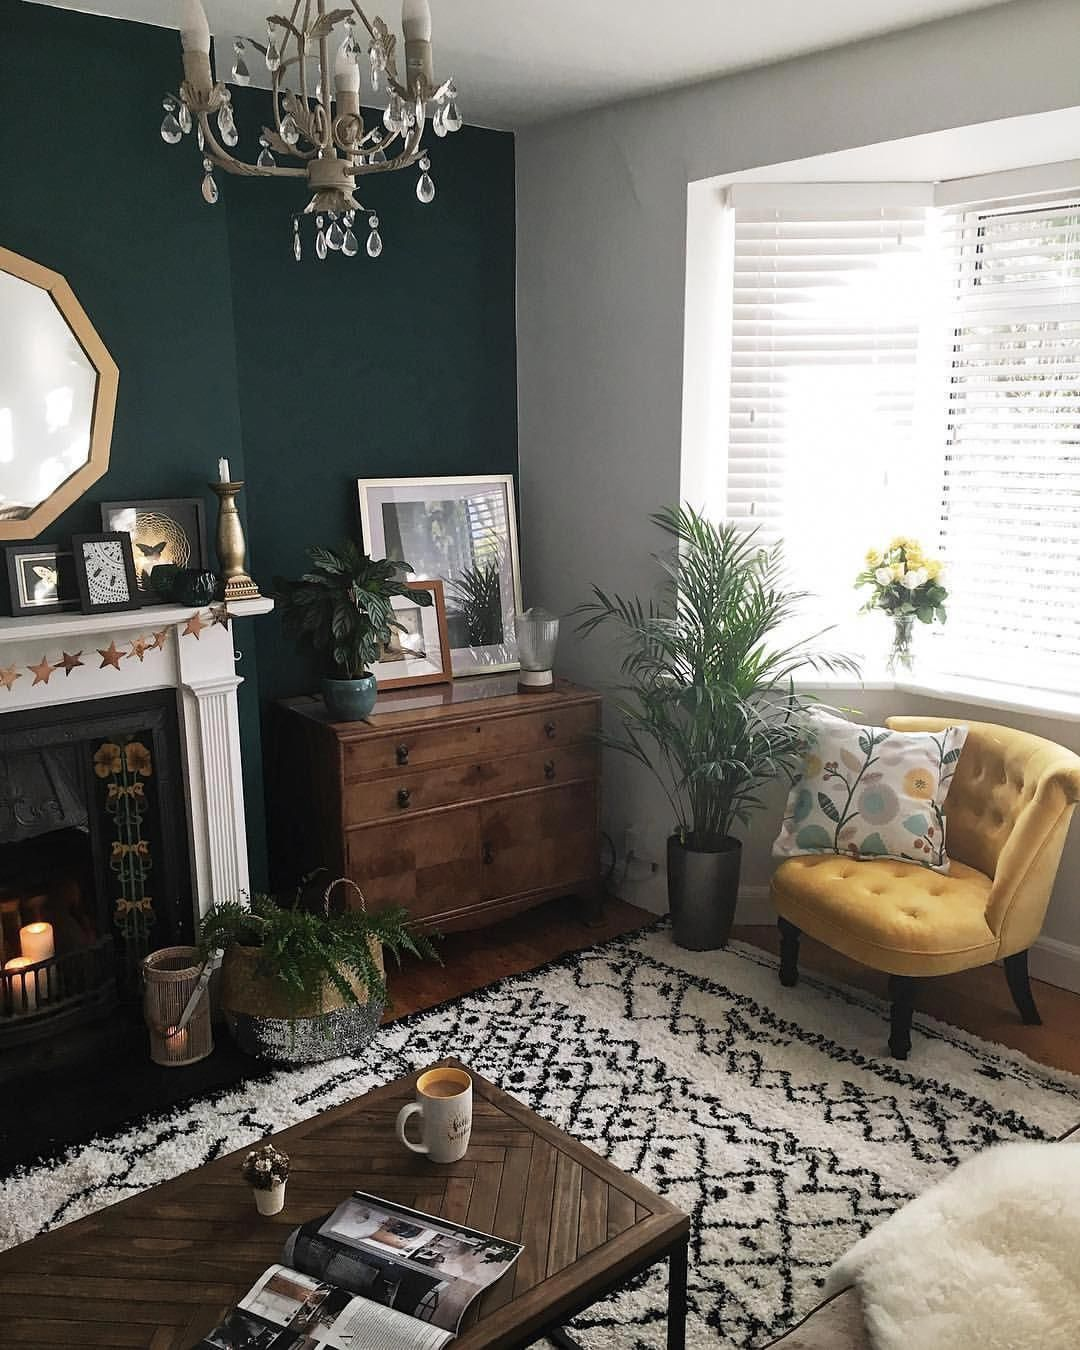 Dark Accent Wall Light Rug Pops Of Earthy Color Living Room Designs Home Living Room Living Room Green